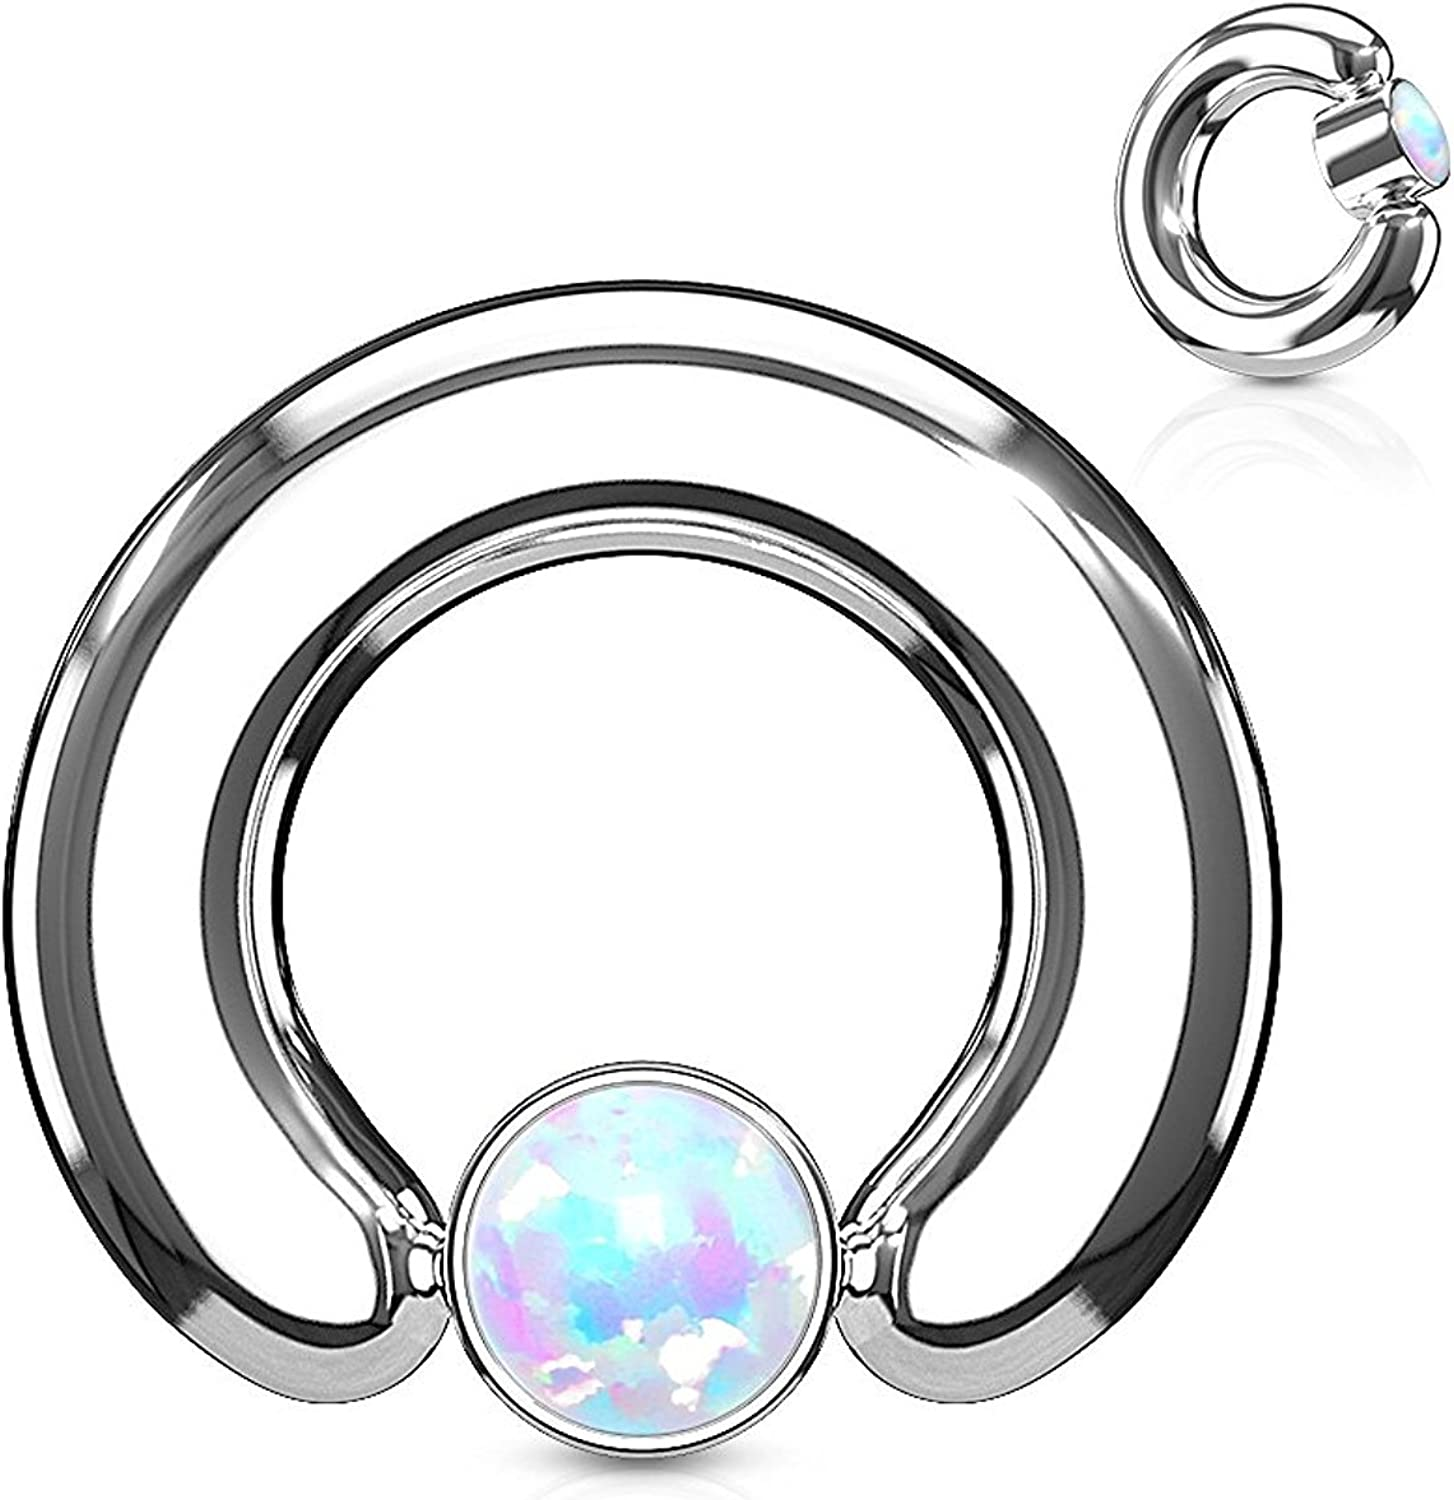 Covet Jewelry Opal Large Gauge Round Flat Cylinder Captive Rings 316L Surgical Steel